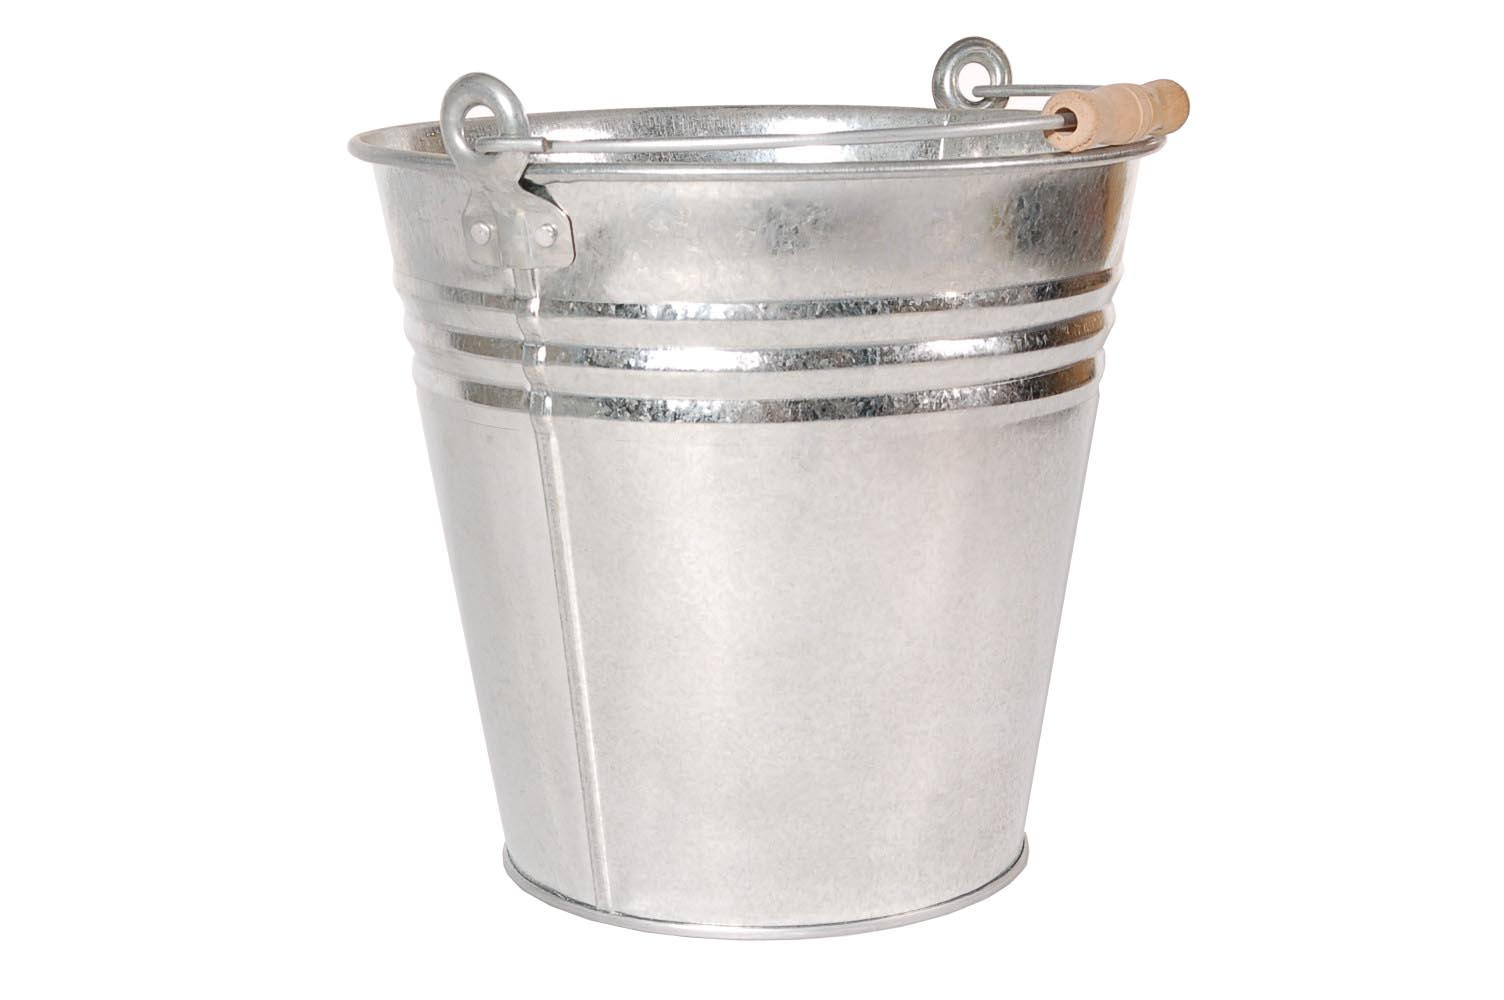 Bucket clipart metal bucket.  collection of high